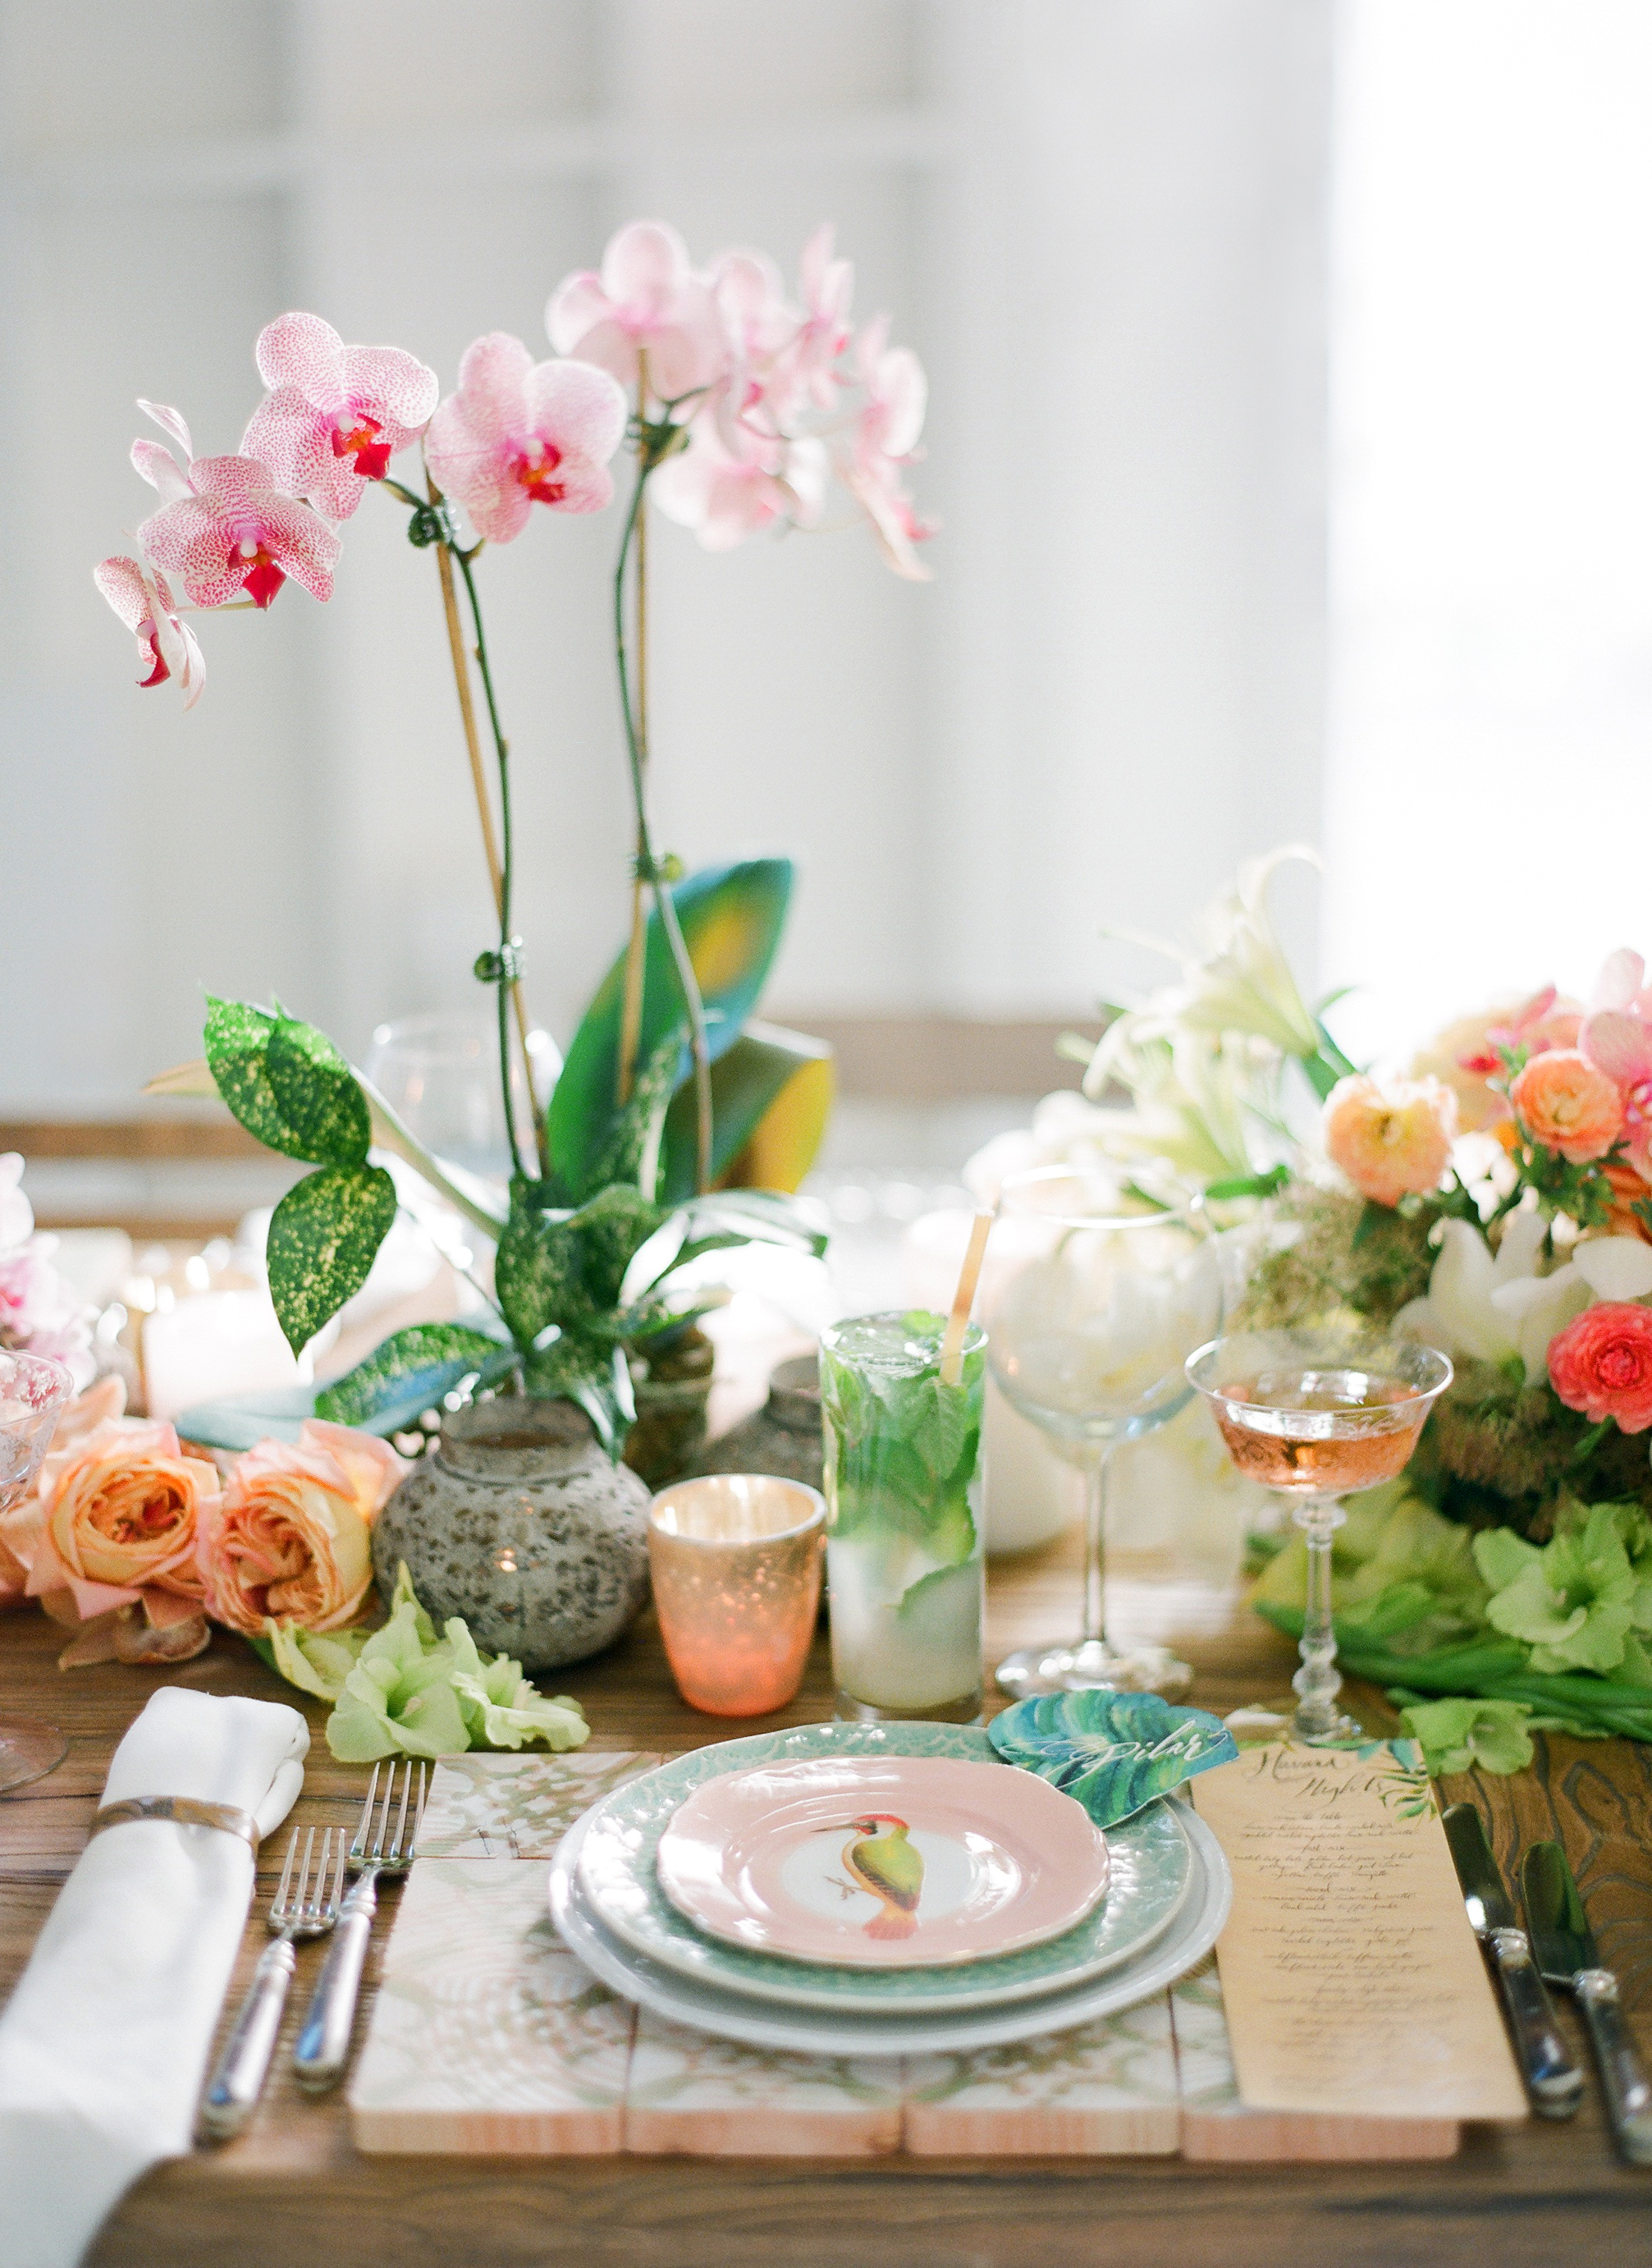 Tropical Place Setting with Orchids and Patterned Plates